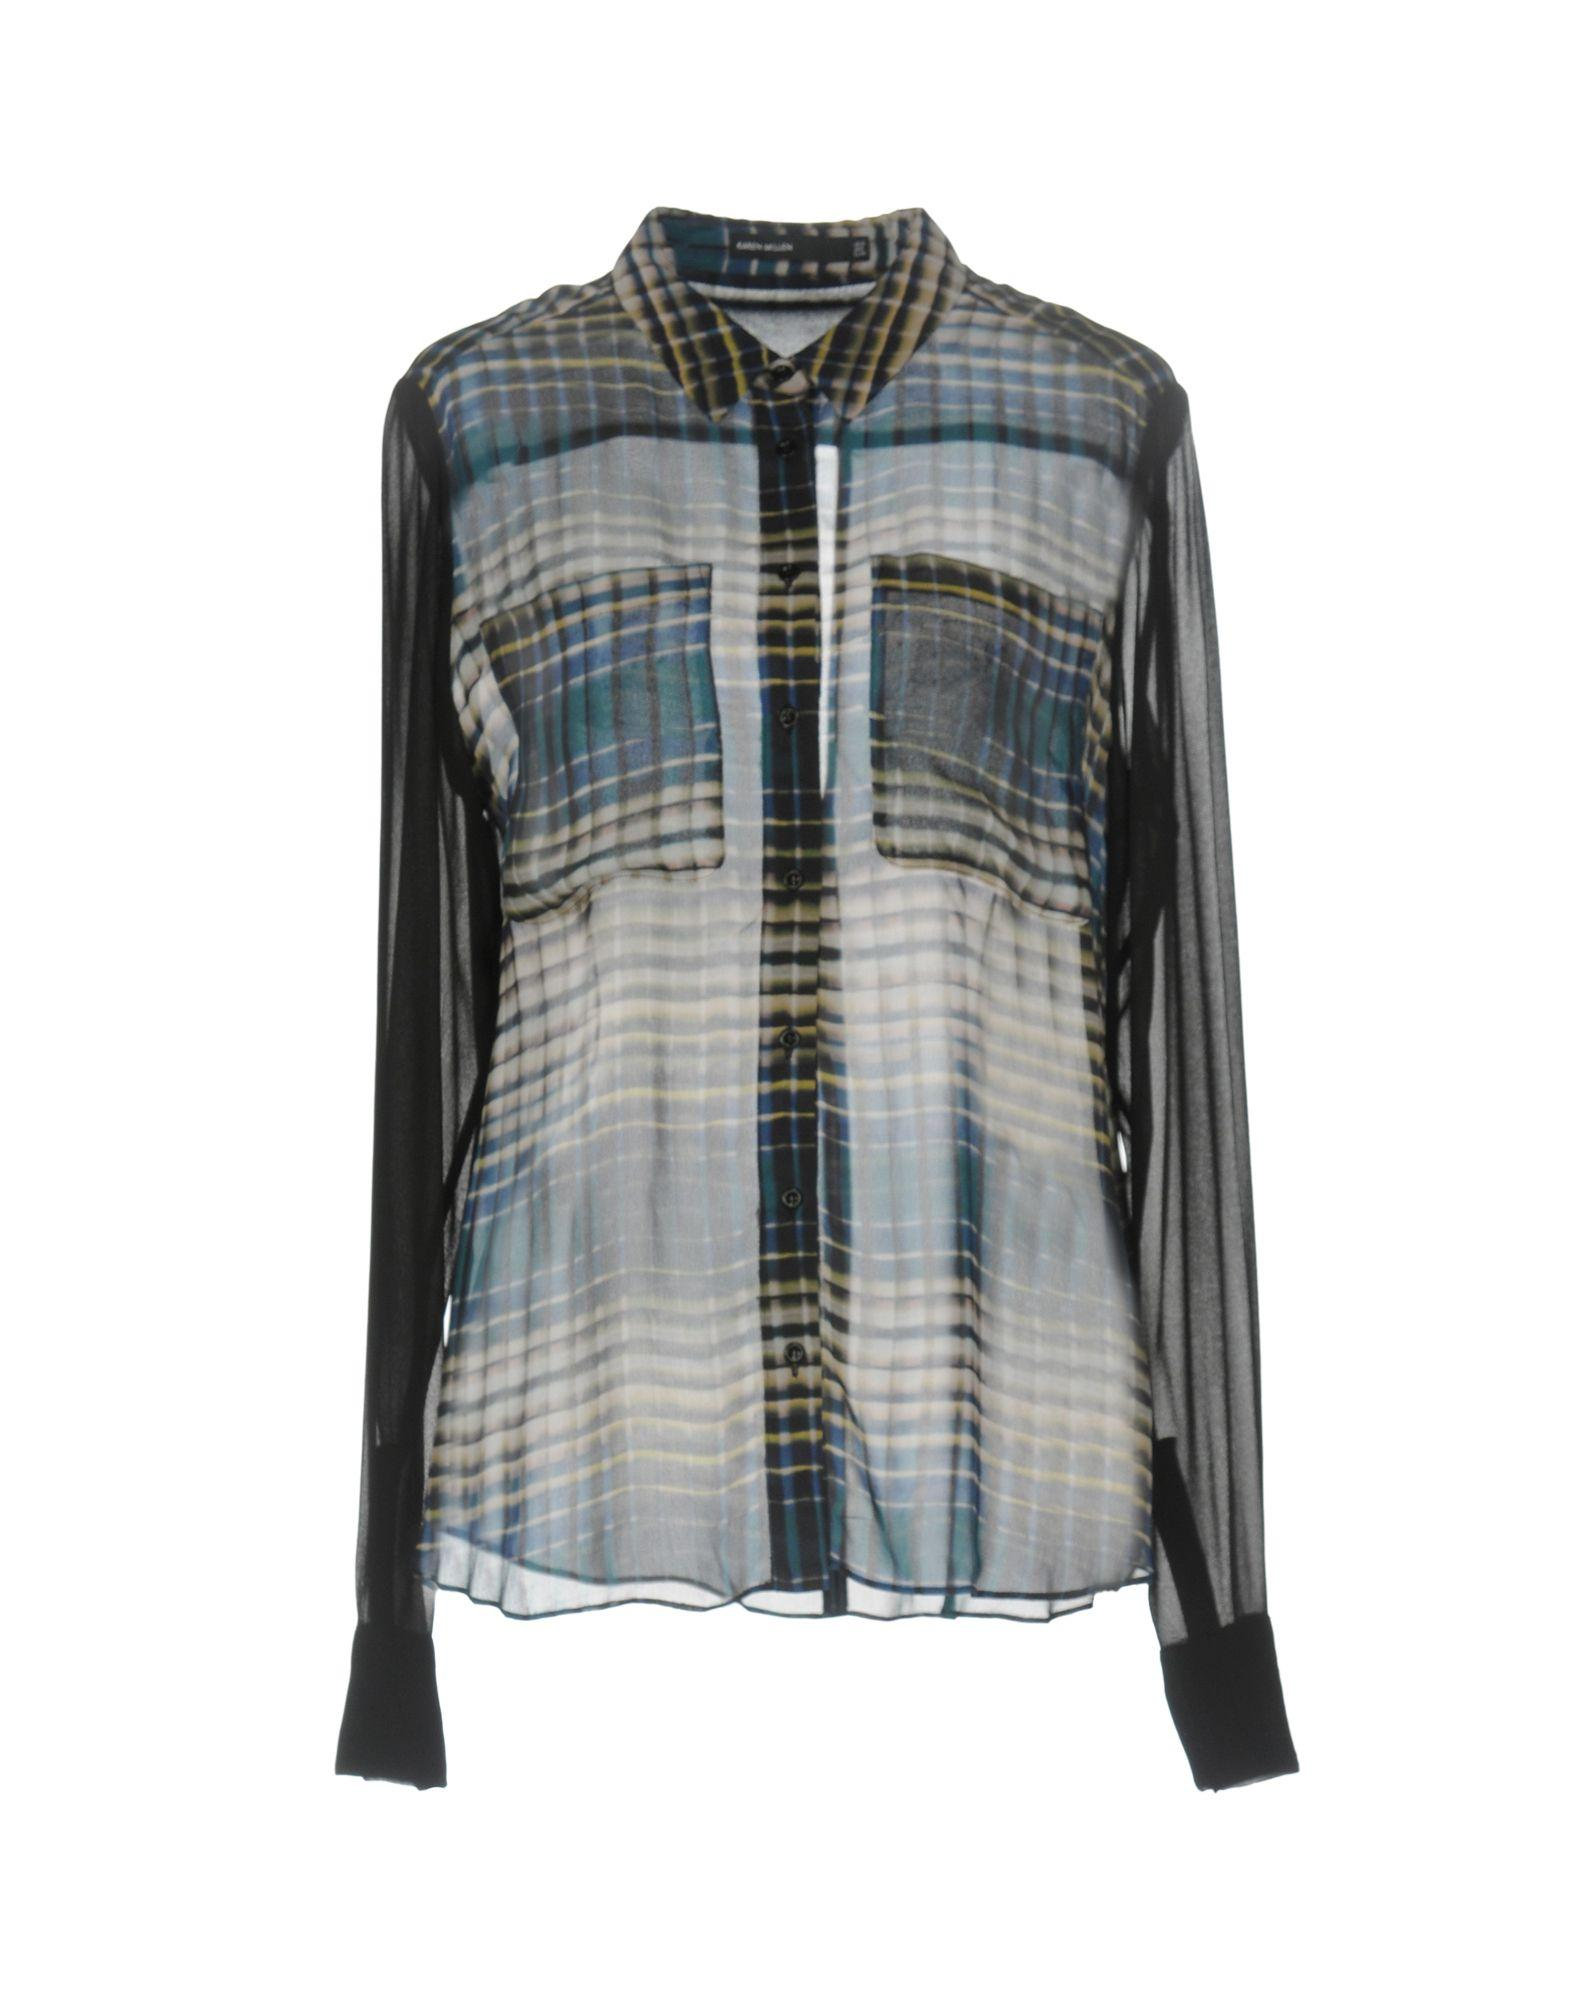 Karen Millen Shirts In Dark Green